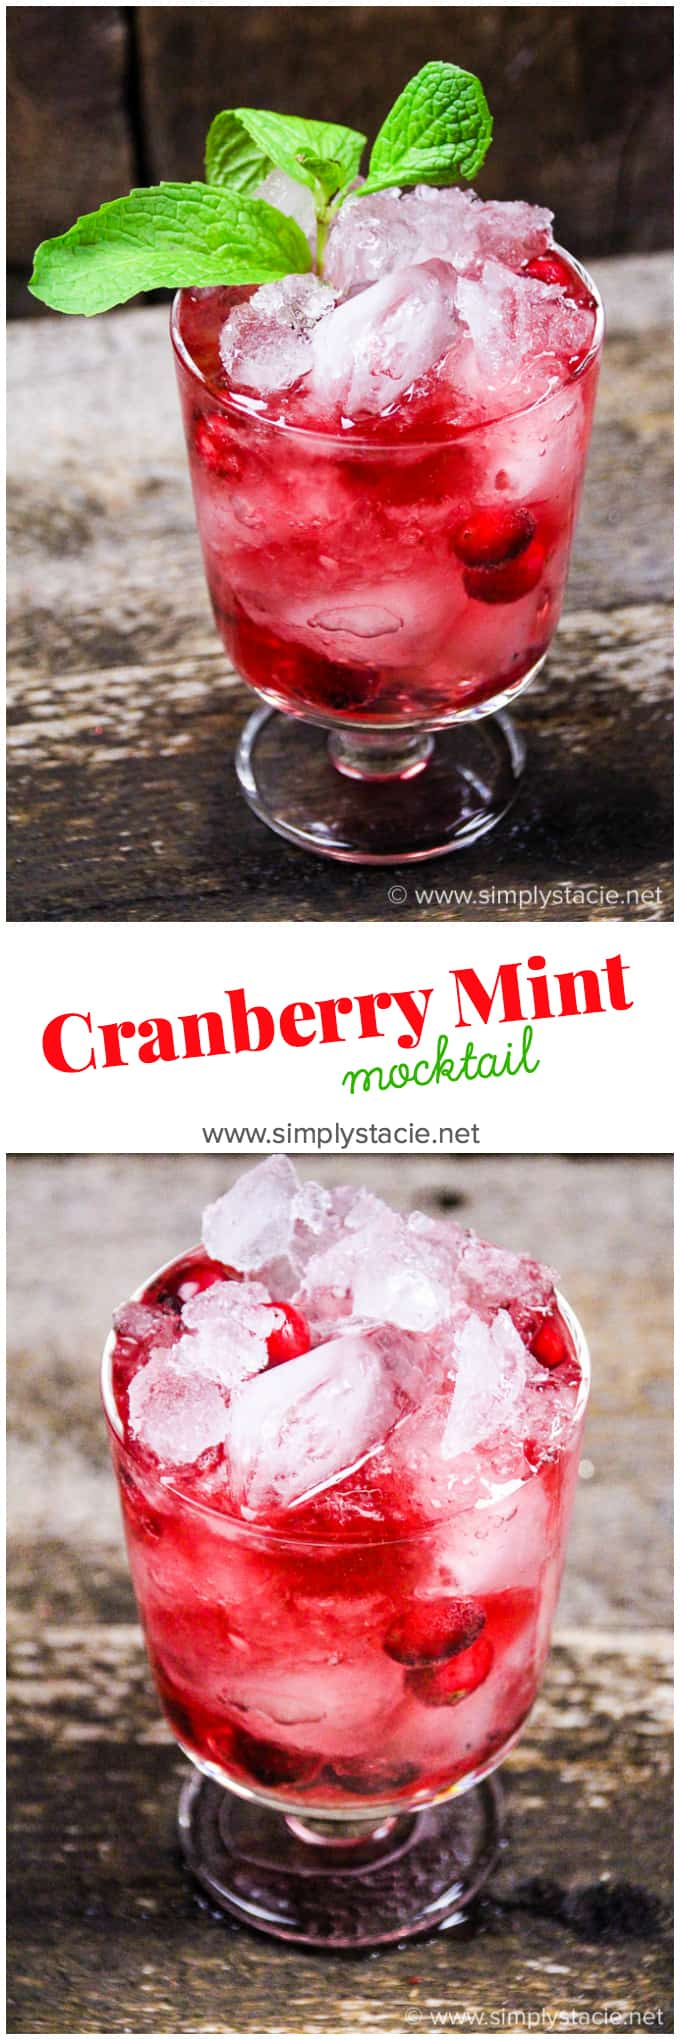 Cranberry Mint Mocktail - This mocktail is the perfect holiday party beverage. The red cranberries and green mint echo the colours of the season, with a sweet, refreshing and bubbly tang!